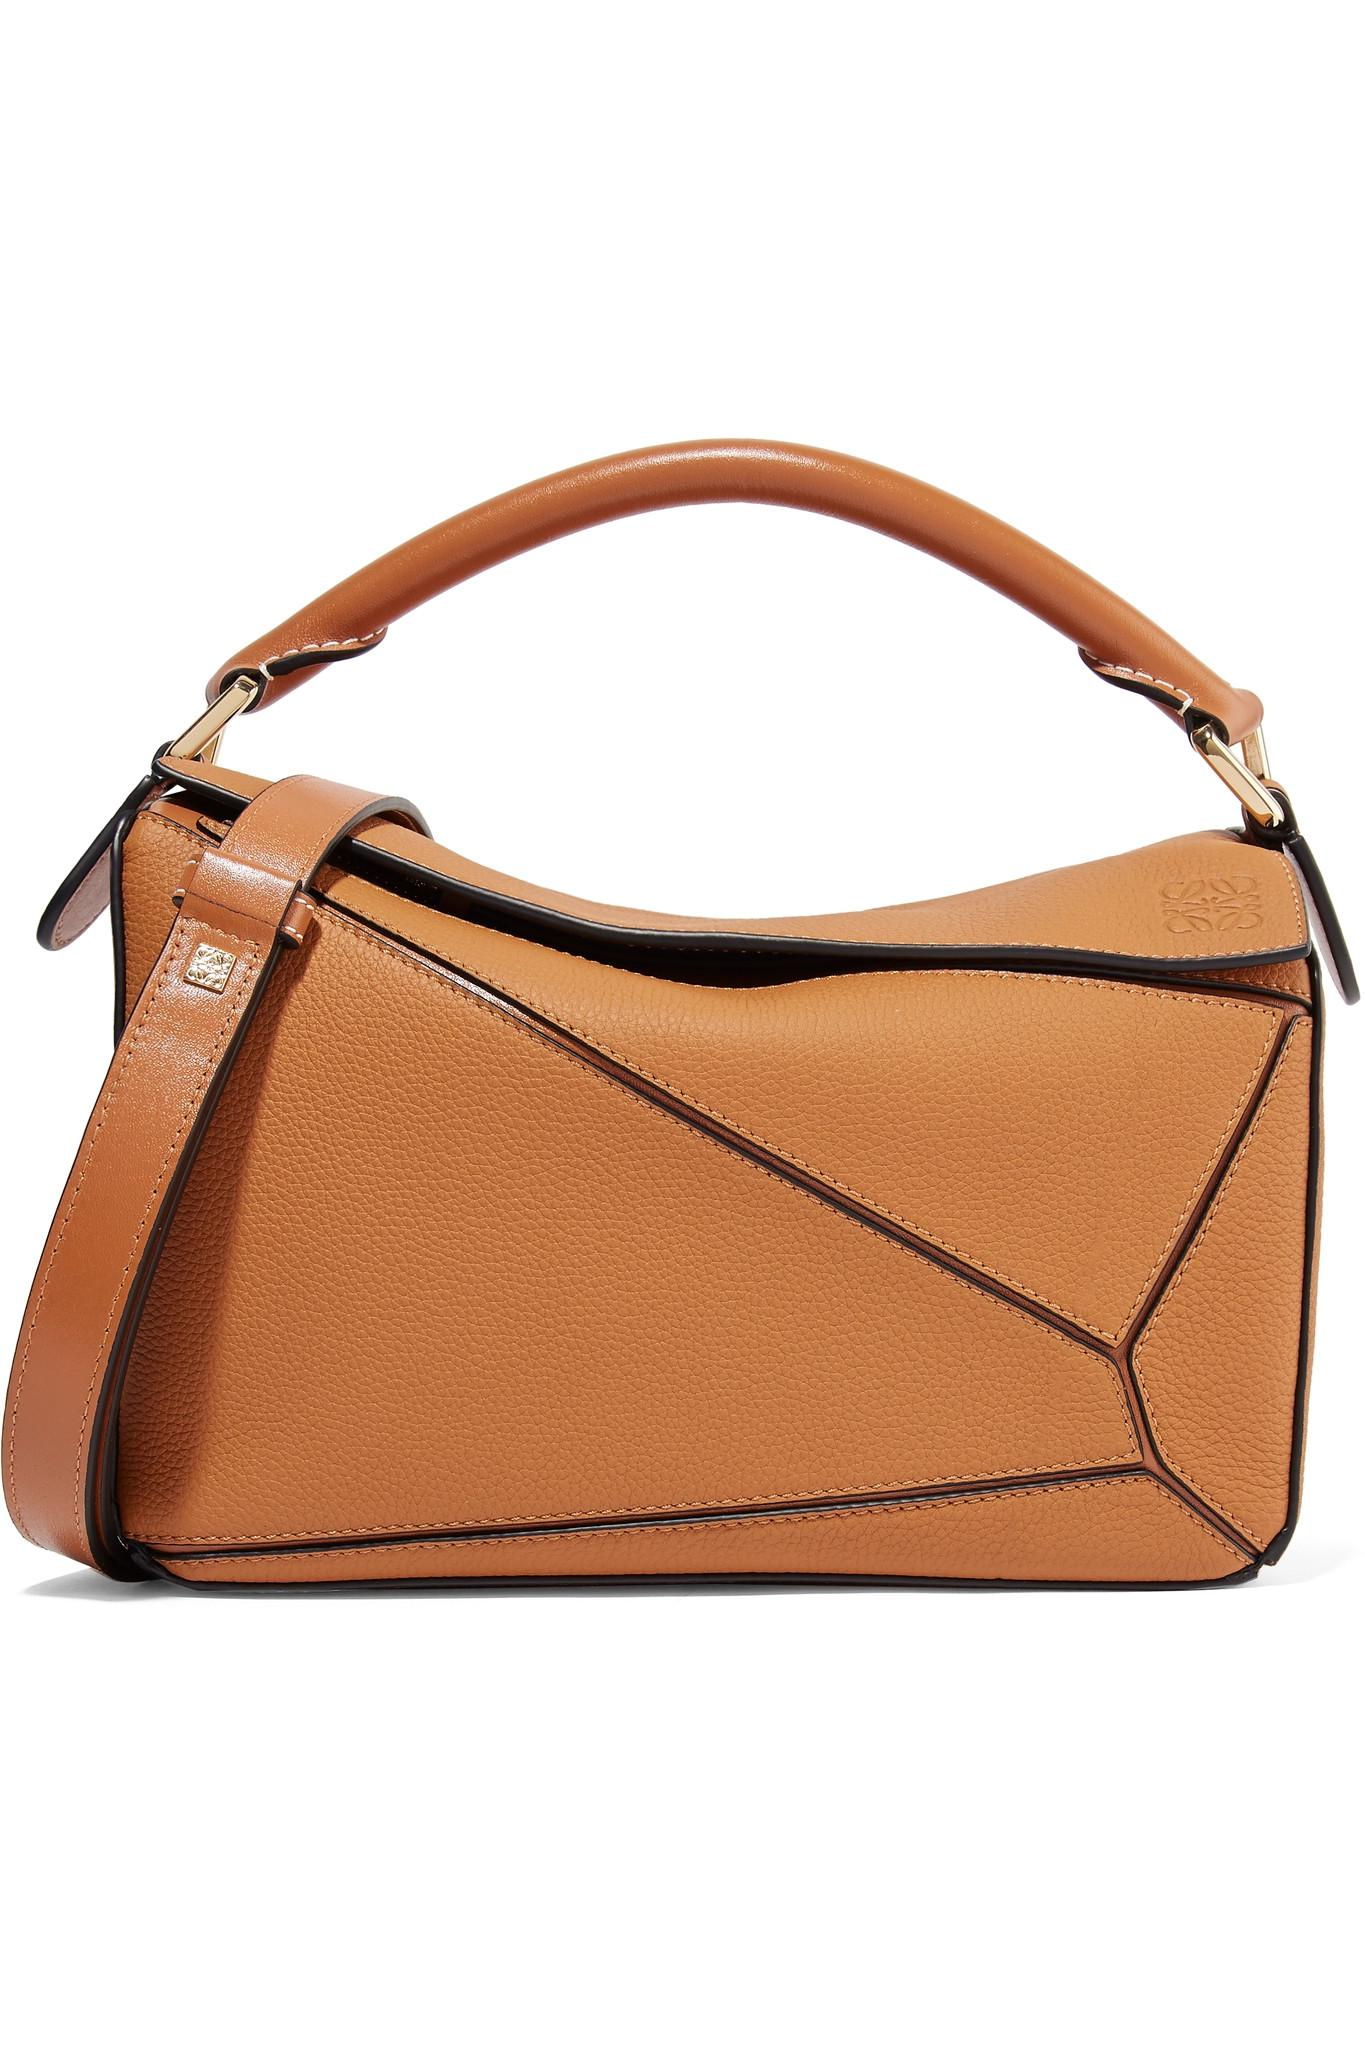 92736dccb710 Loewe Puzzle Small Textured-leather Shoulder Bag in Brown - Save 27 ...